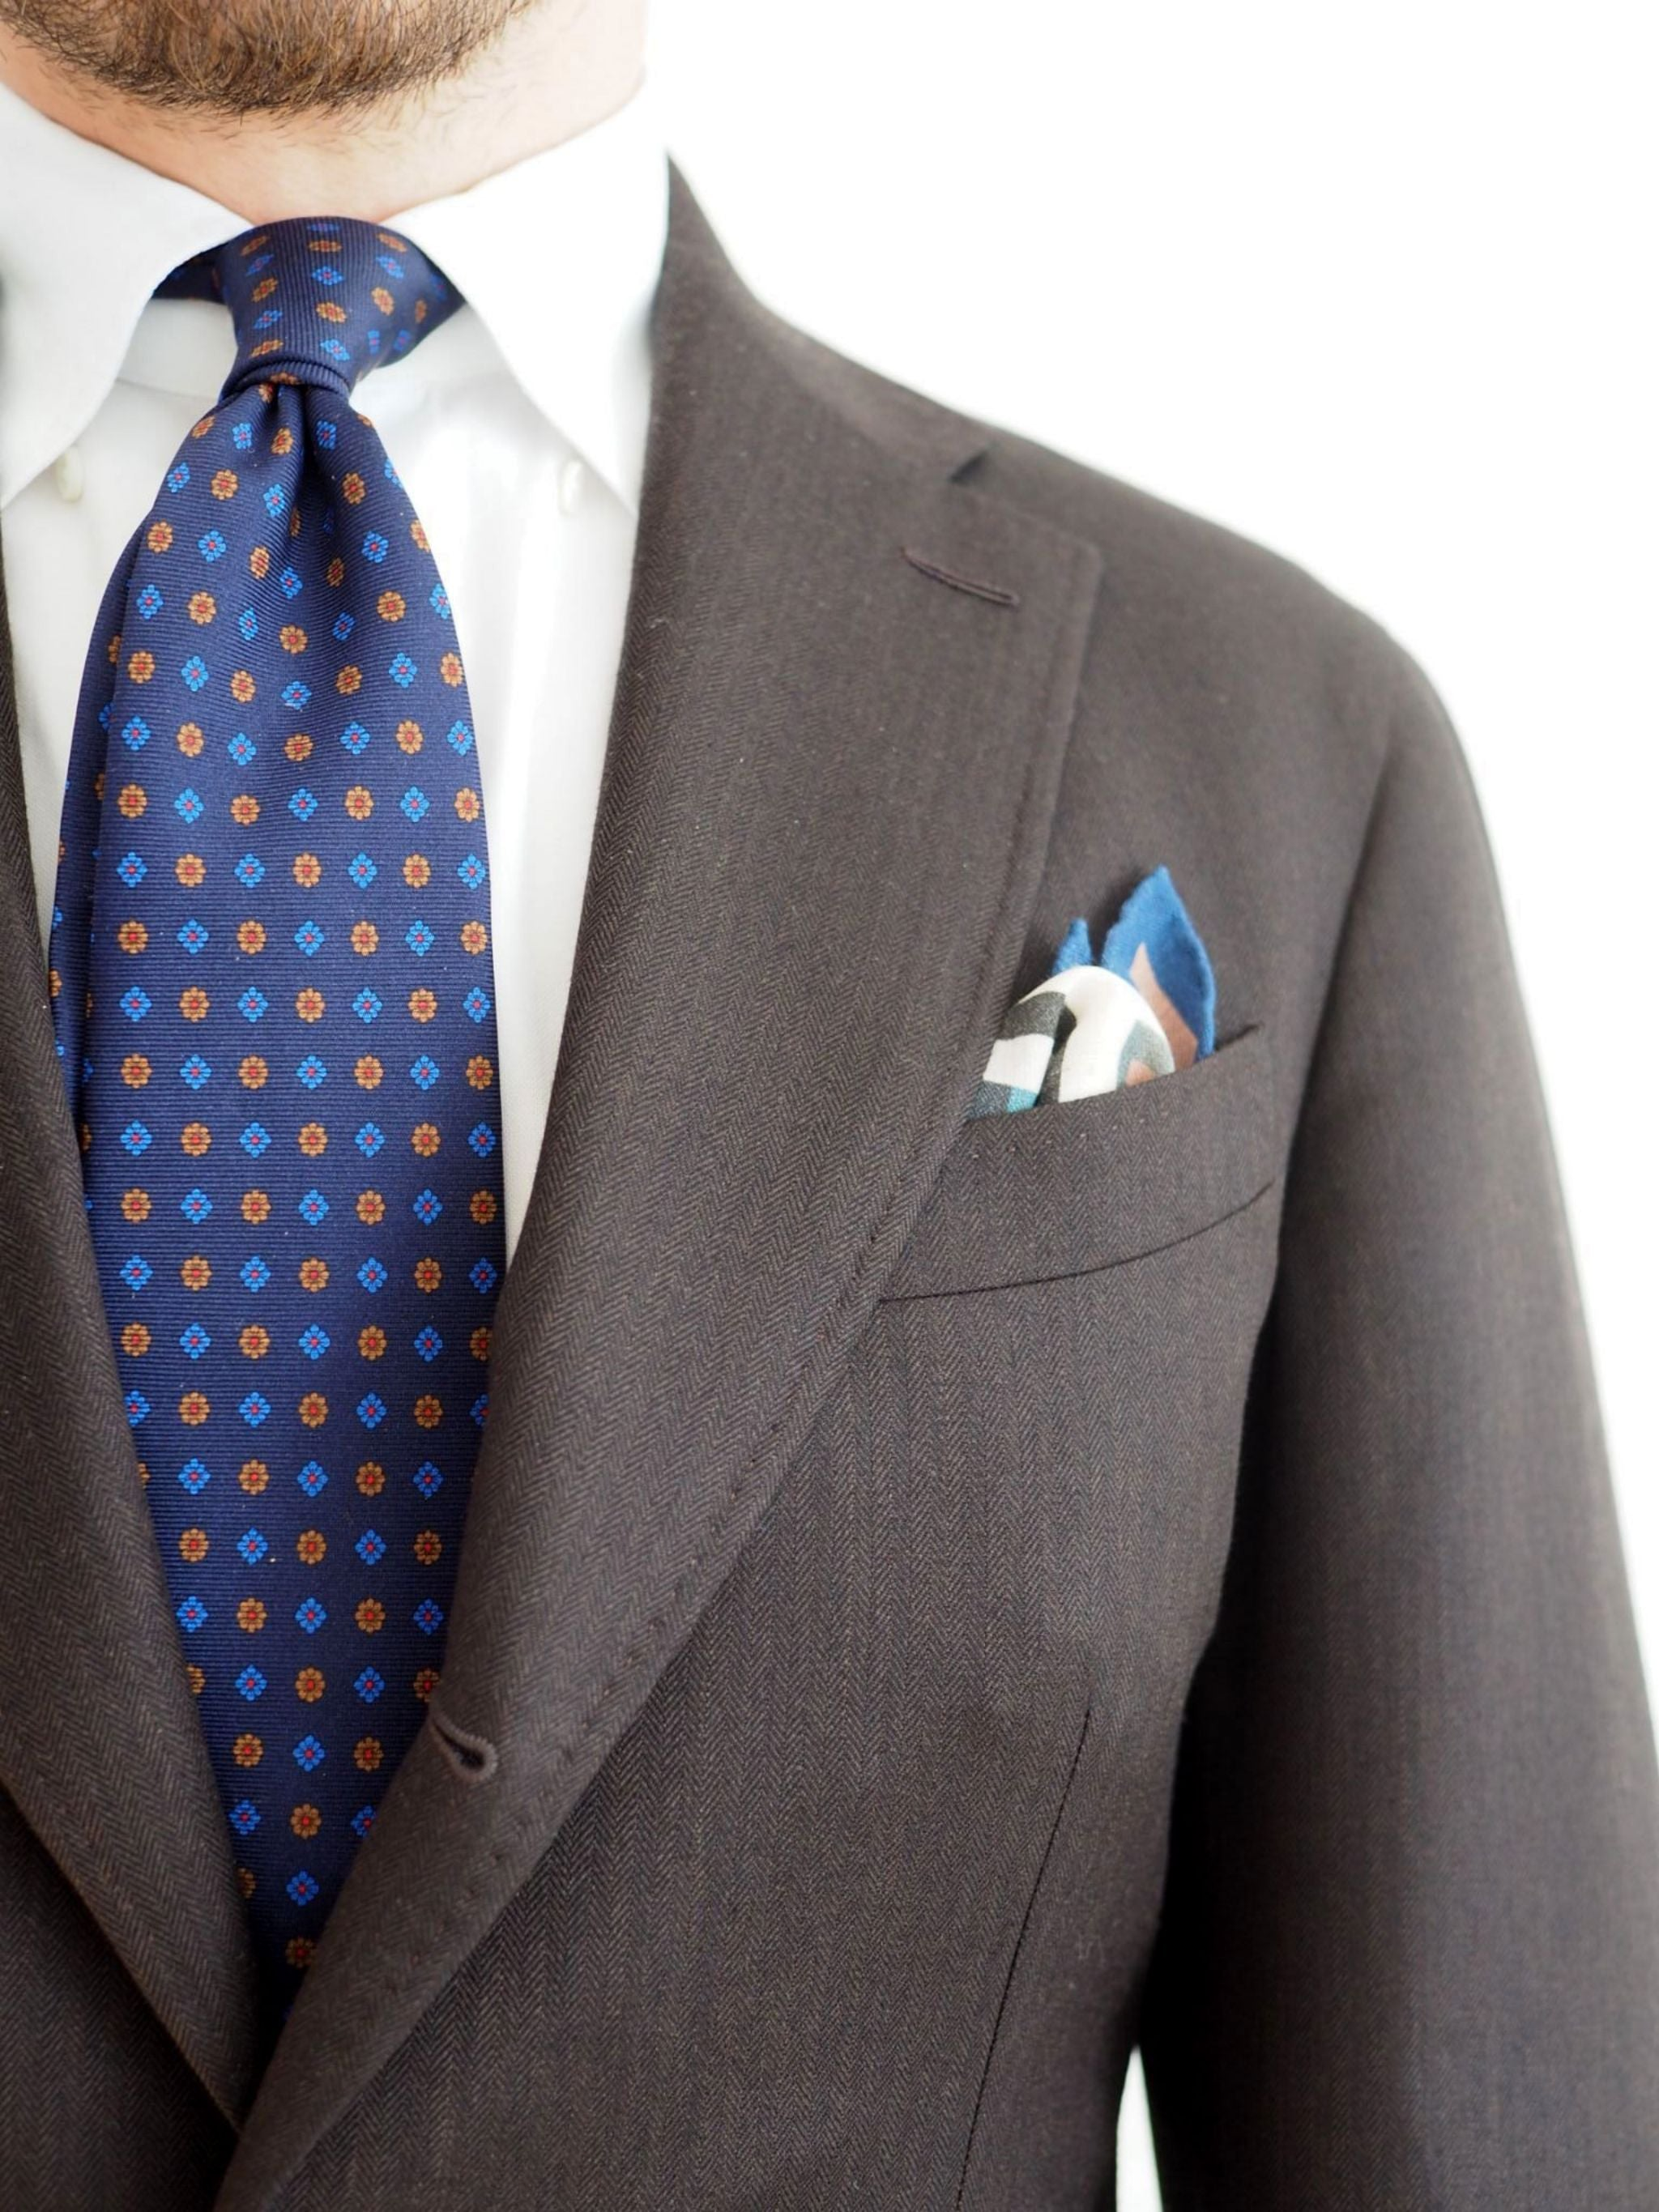 Favorite suits - brown herringbone wool with floral print silk and white poplin cotton